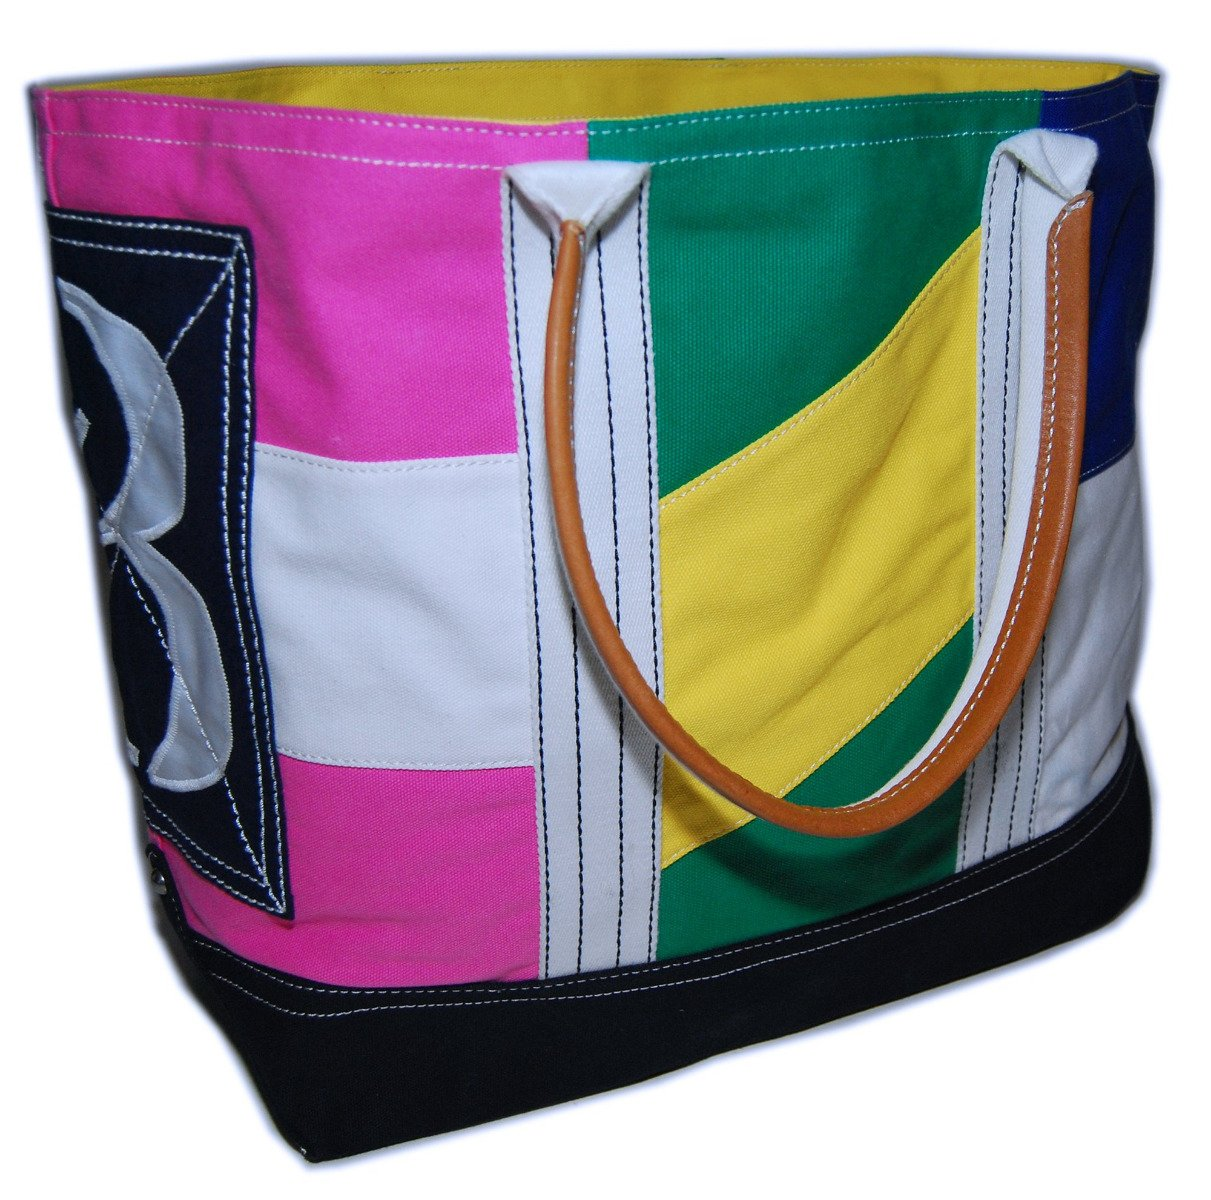 Ralph Lauren Rugby Vintage Canvas Carryall Tote Bag Pink Green Yellow Blue Navy